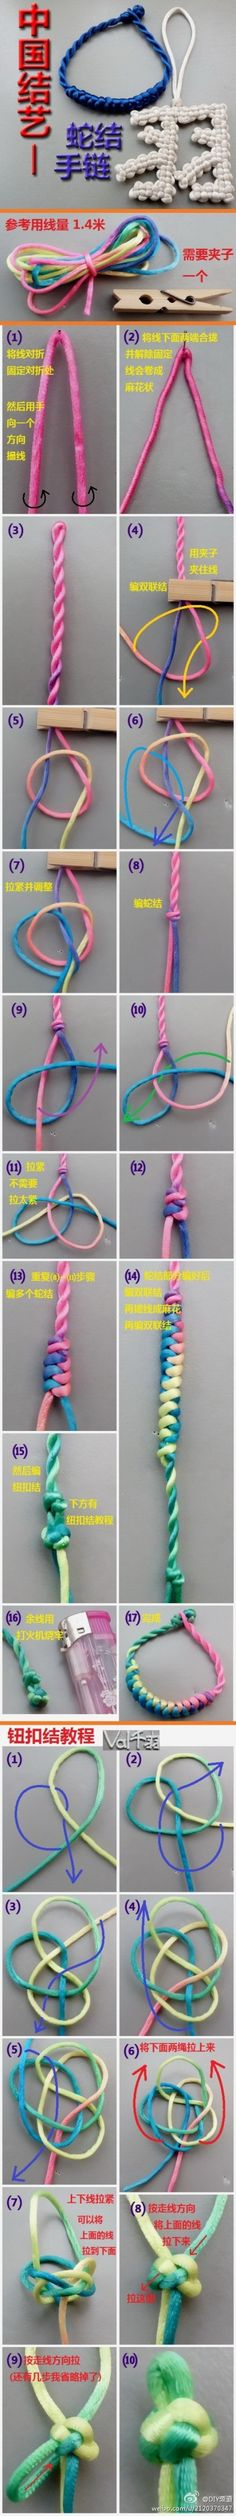 Chinese knot art - the snake knot bracelet detailed tutorial. Simple hand rope.